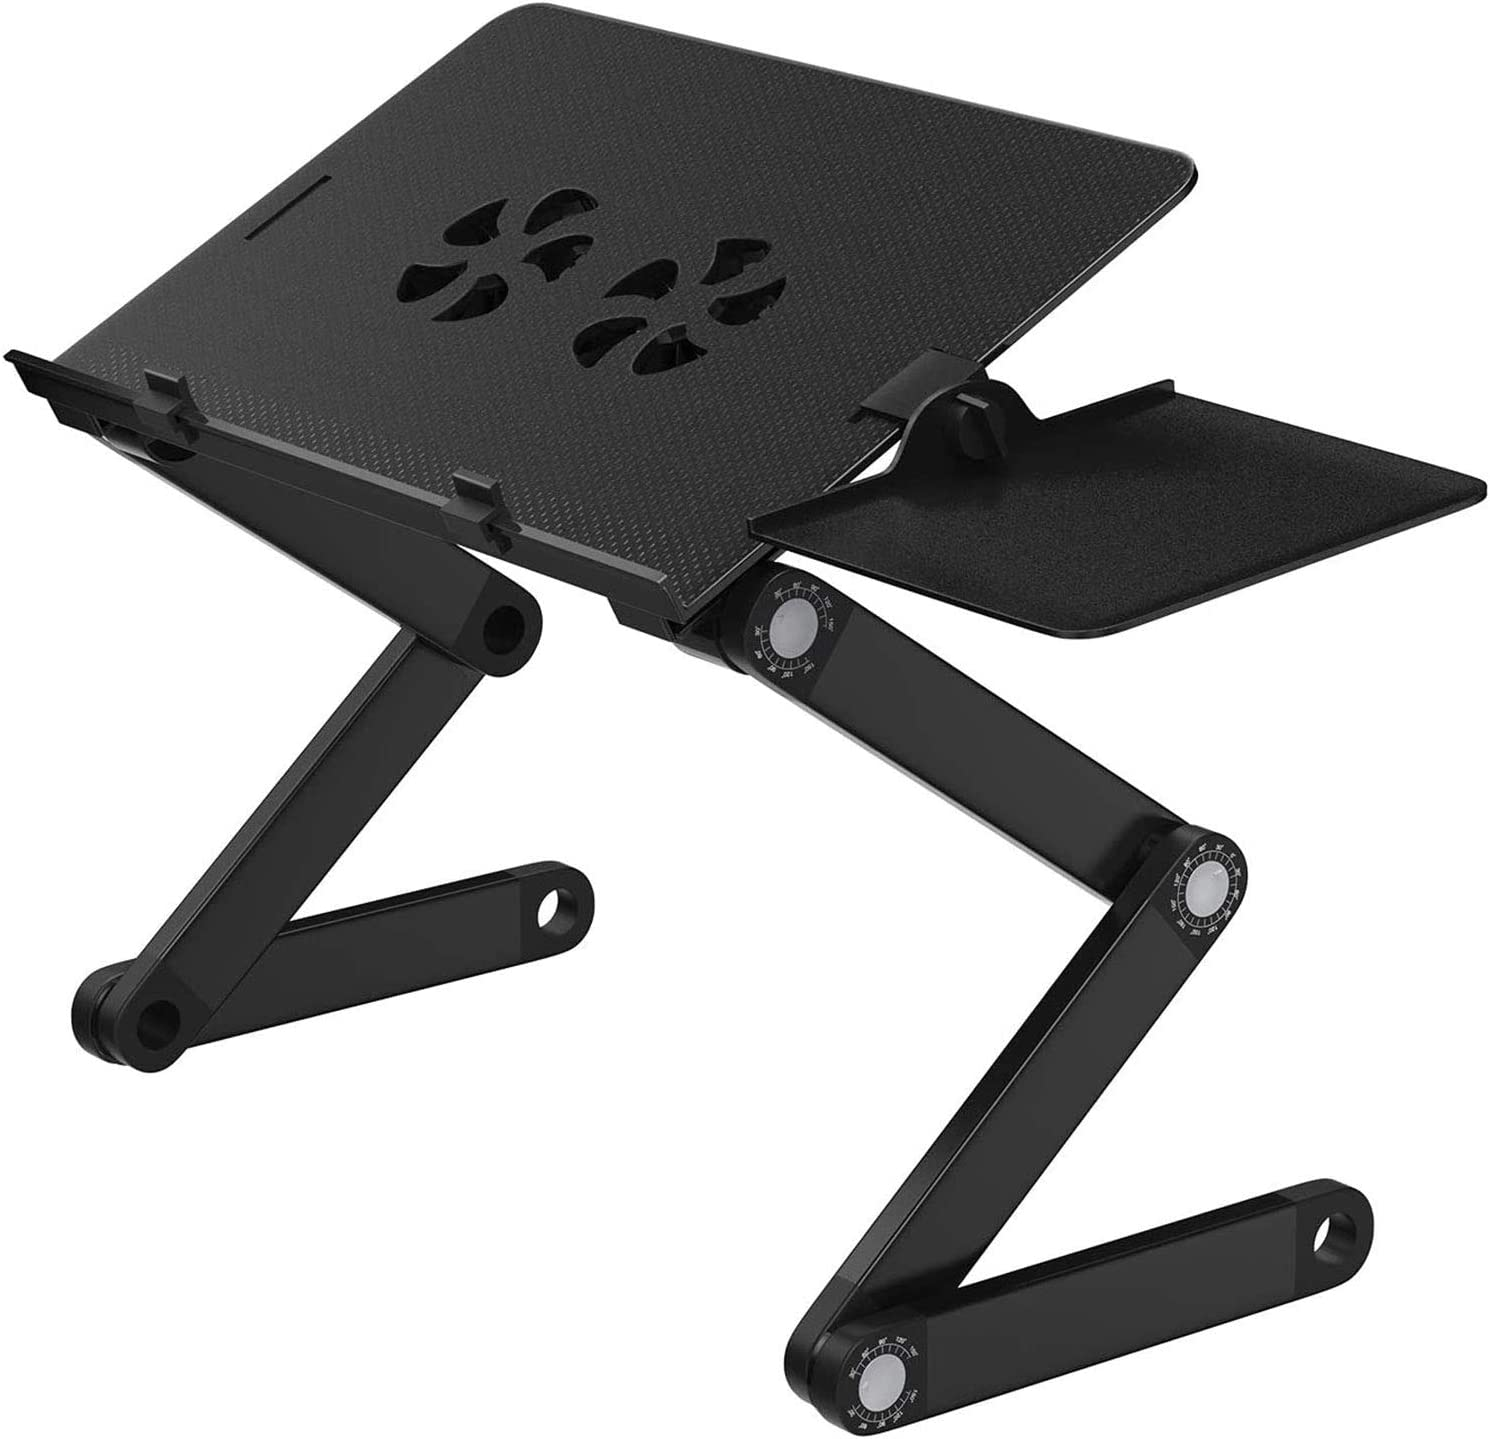 Huanuo Adjustable Laptop Stand Portable Laptop Table Stand With 2 Cpu Cooling Fans Detachable Mouse Pad Ergonomic Lap Desk Tv Bed Tray Standing Desk Office Products